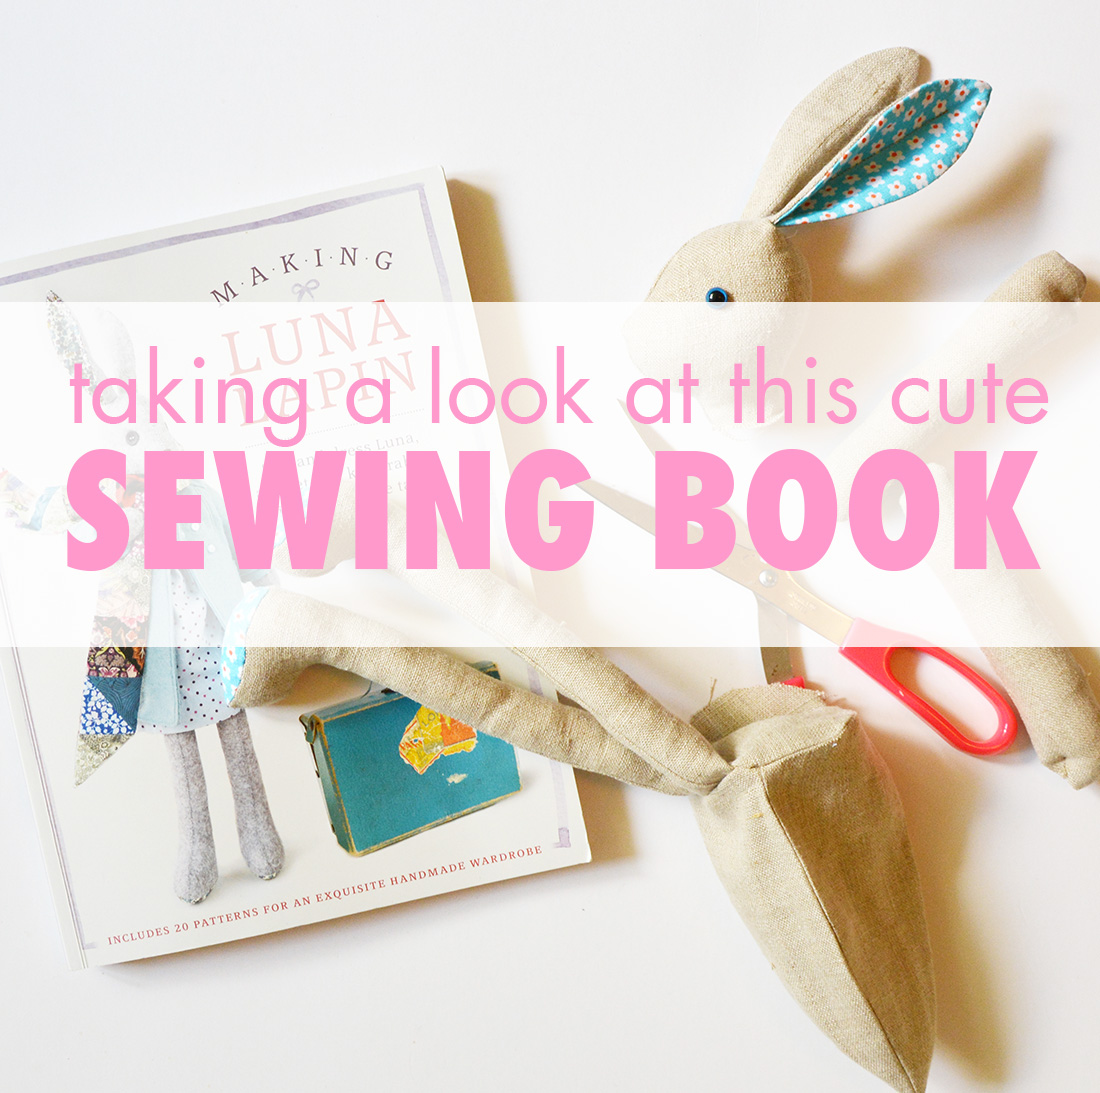 Taking a look at this cute sewing book called Making Luna Lapin by Sarah Peel - a book review by iHanna